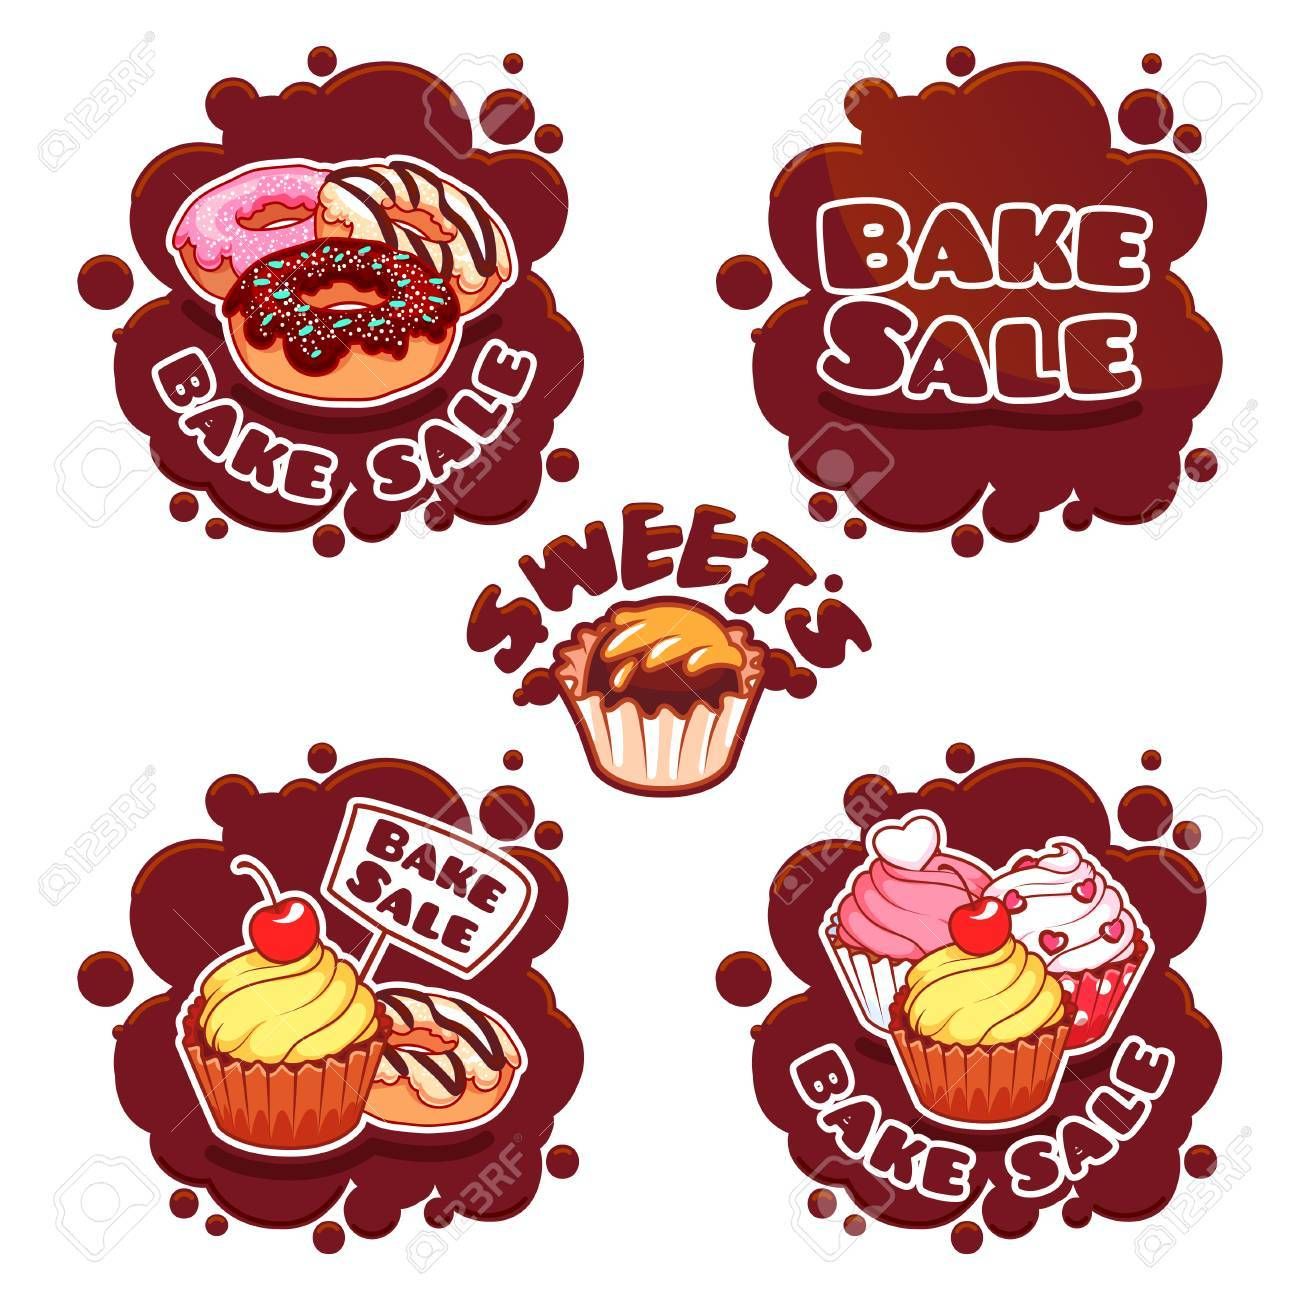 set of labels for bake sale in the form of chocolate spots stock vector